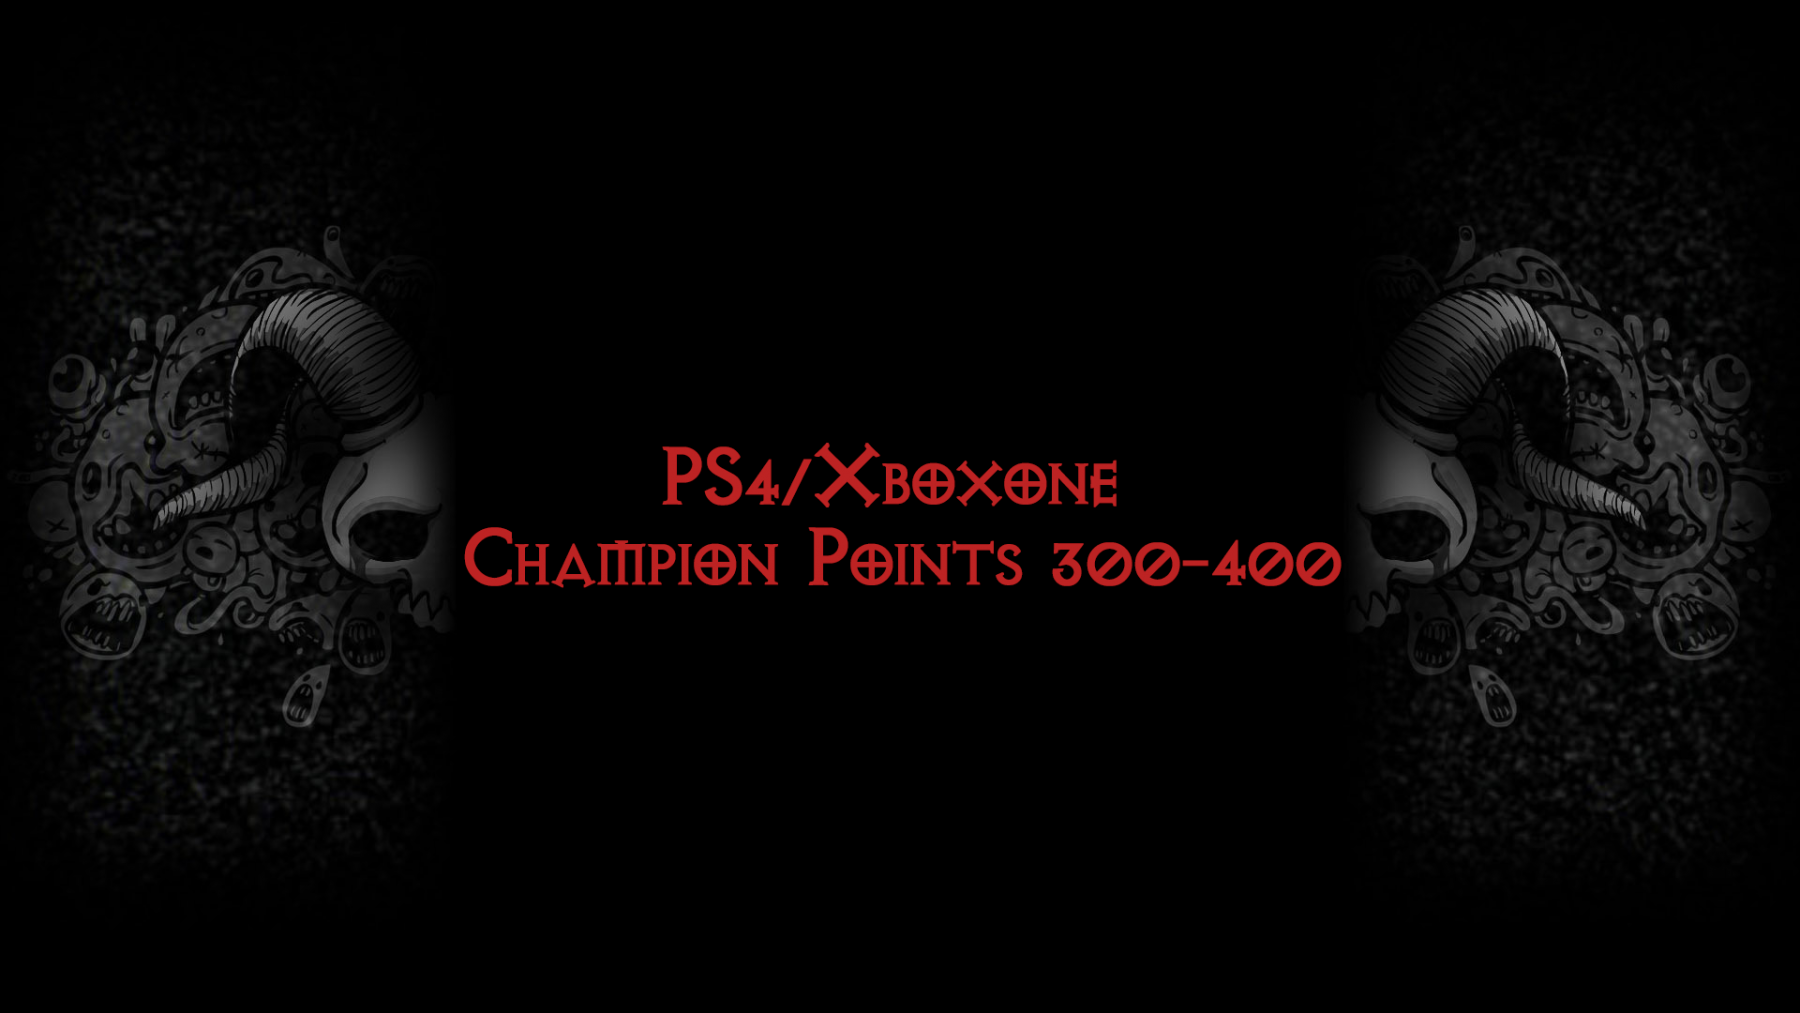 PS4/Xboxone Champion Points 300-400 LeBoosterinho - e2p.com